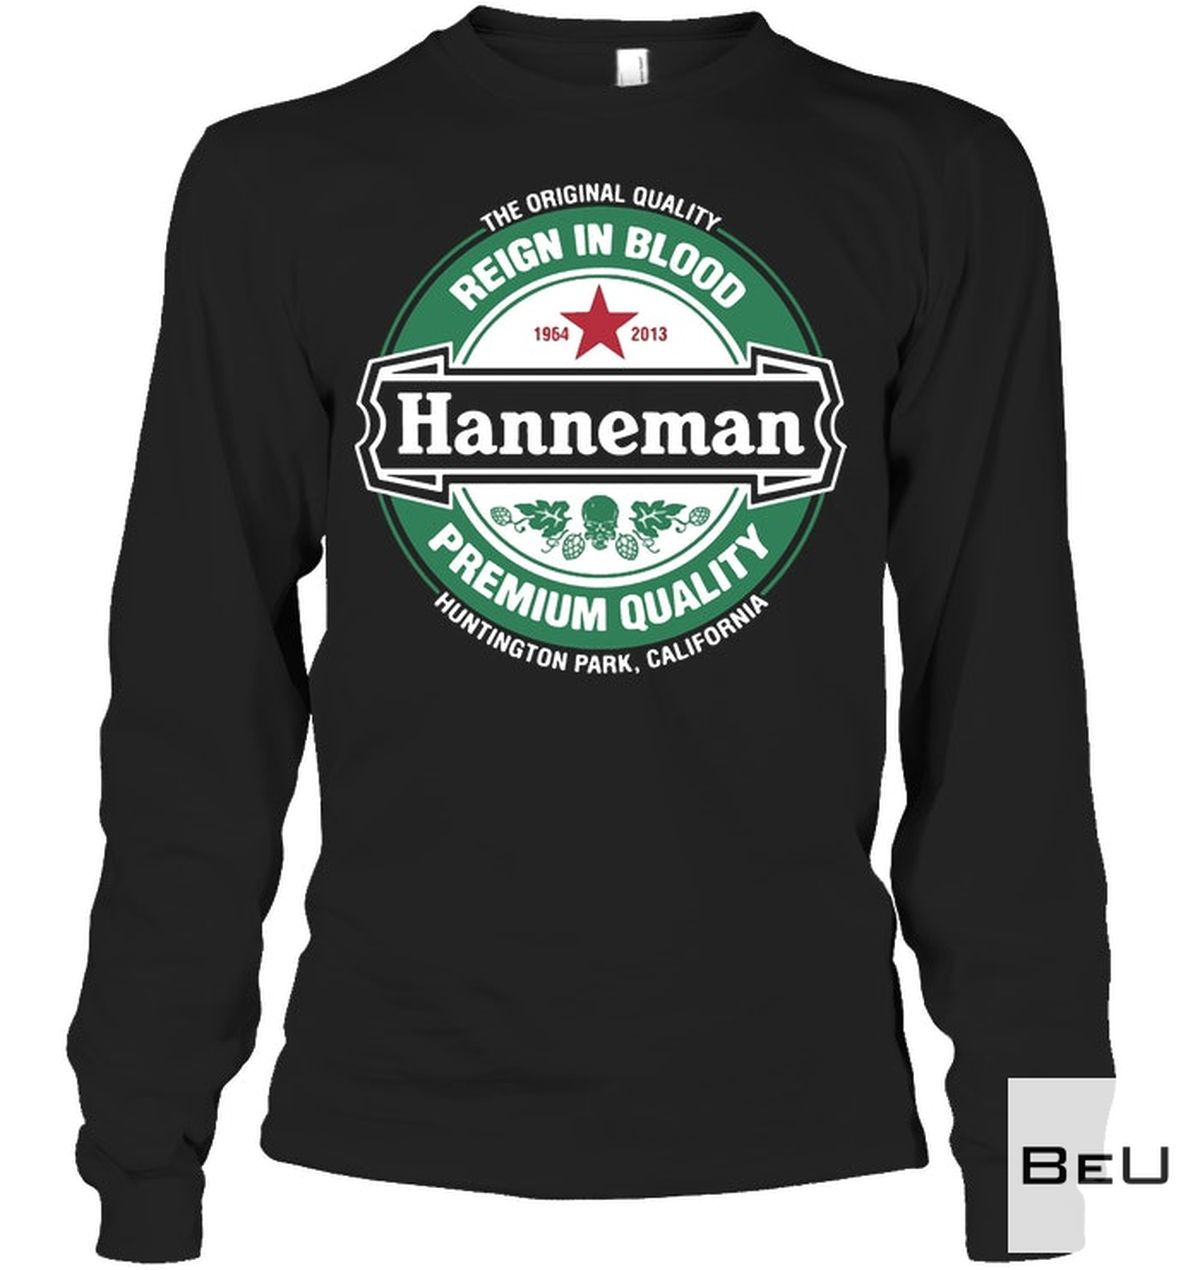 All Over Print The Original Quality Reign In Blood Hanneman Shirt, Hoodie, Tank Top